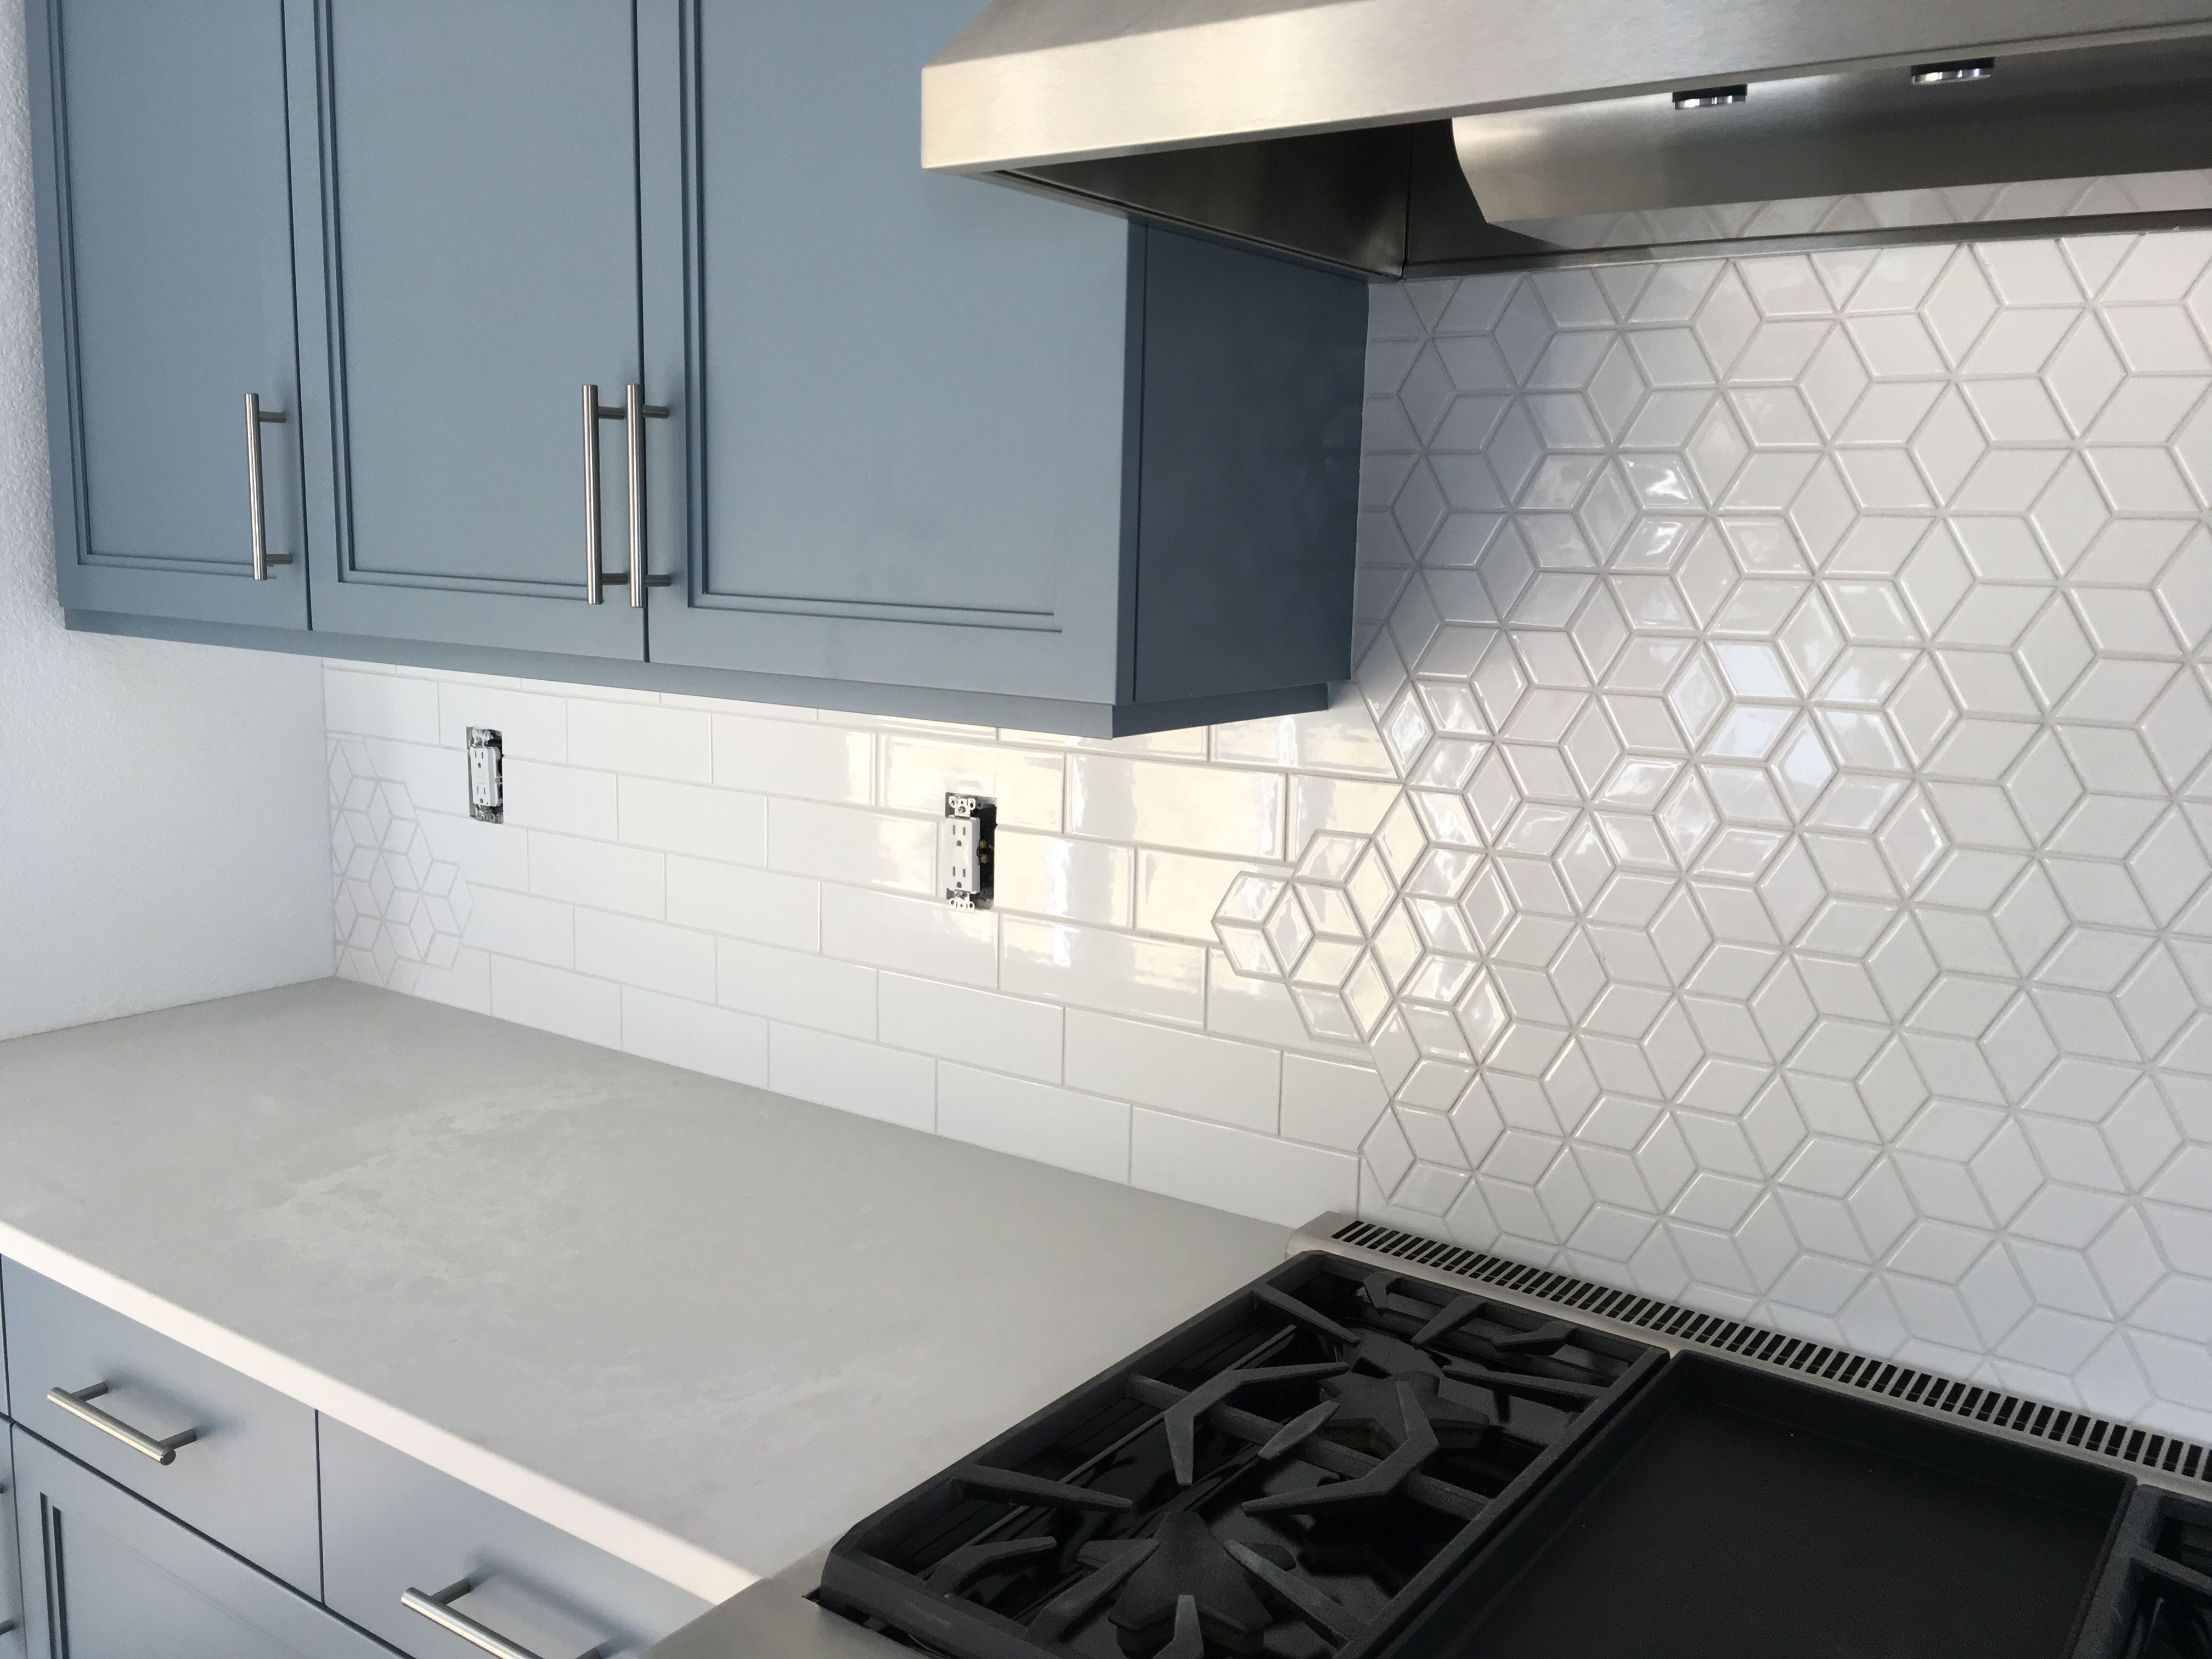 Kitchen Backsplash With A Combination Of The Diamond Pattern Mosaic And 3x9 Subway Tile From Clayhaus Ceramics Kitchen Backsplash Backsplash New Homes